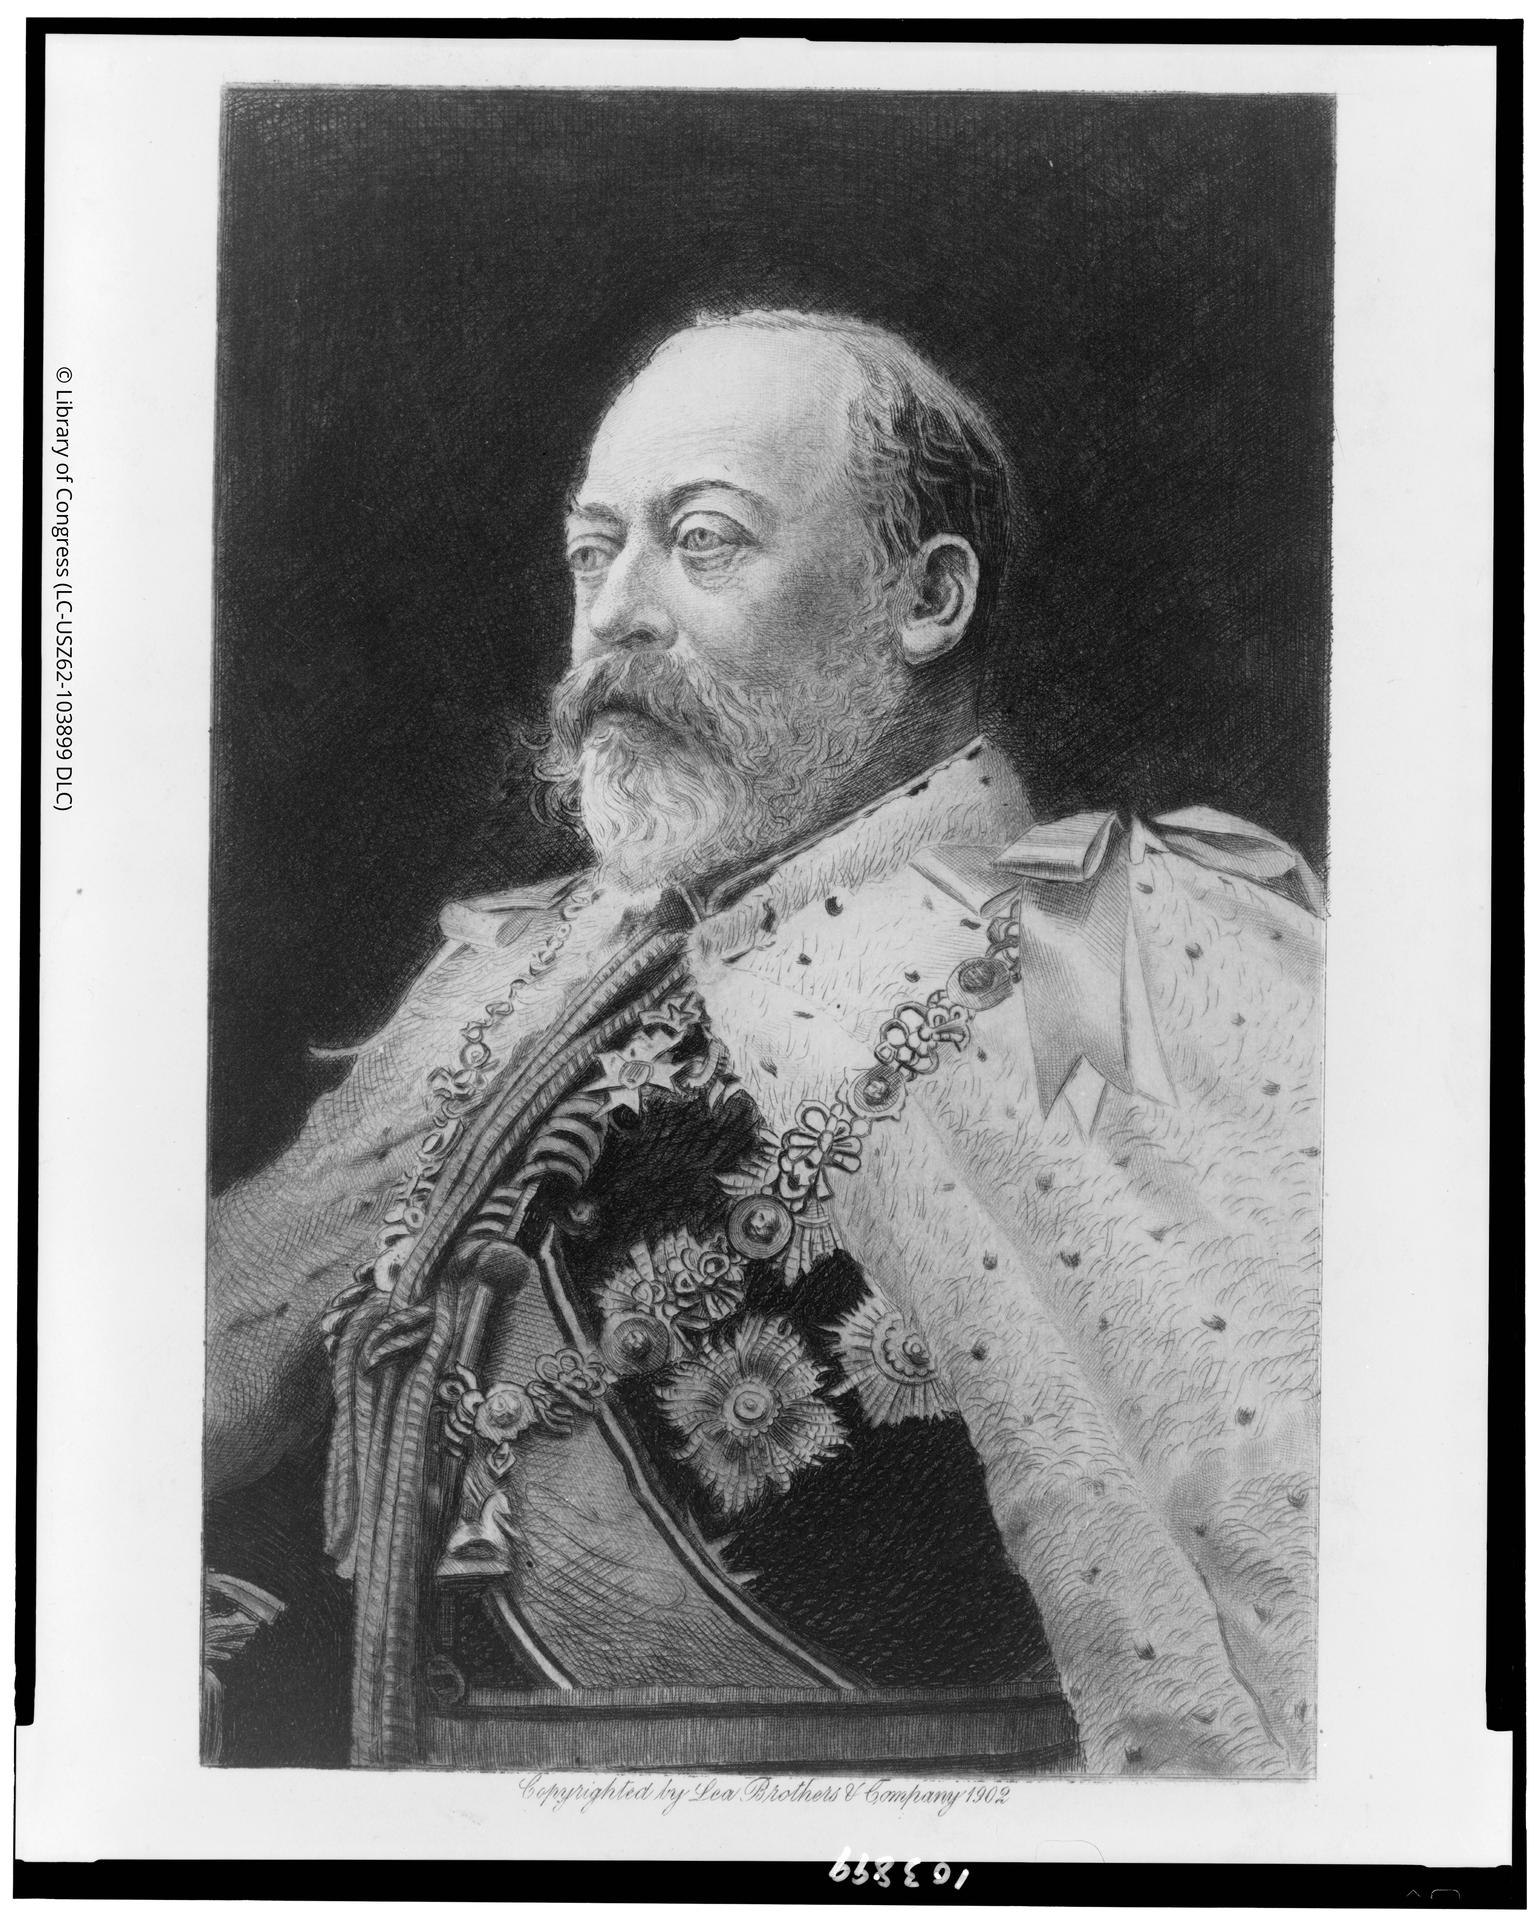 Engraving of King Edward VII, by Lea Brothers & Company, 1902. Library of Congress LC-USZ62-103899.